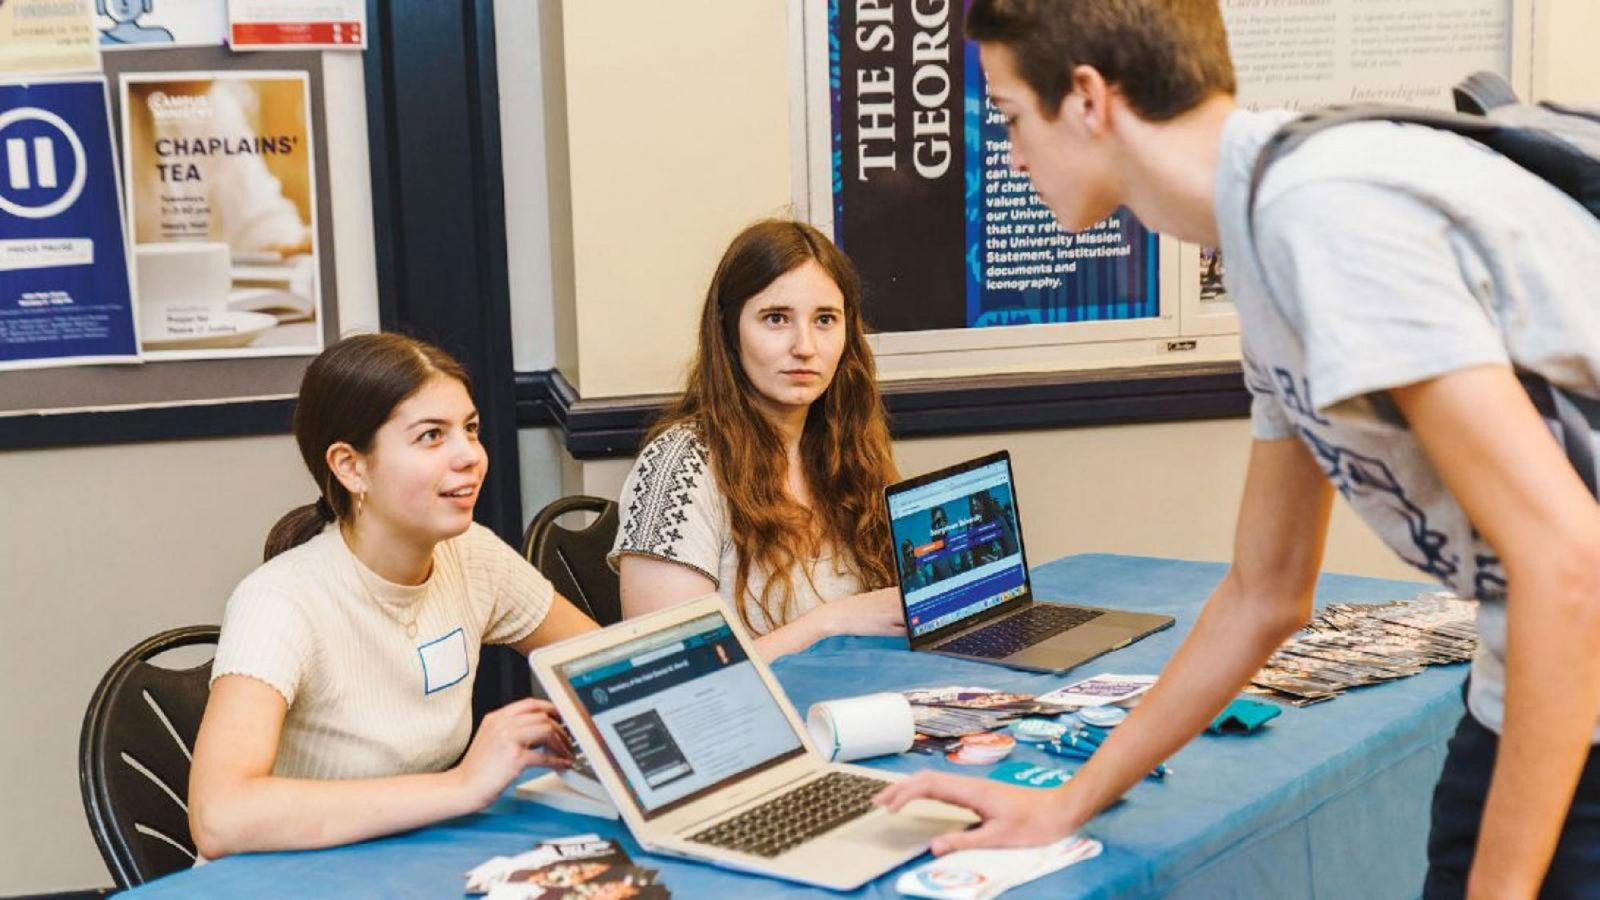 Two students sit at a table while another student registers to vote on a laptop at the table.